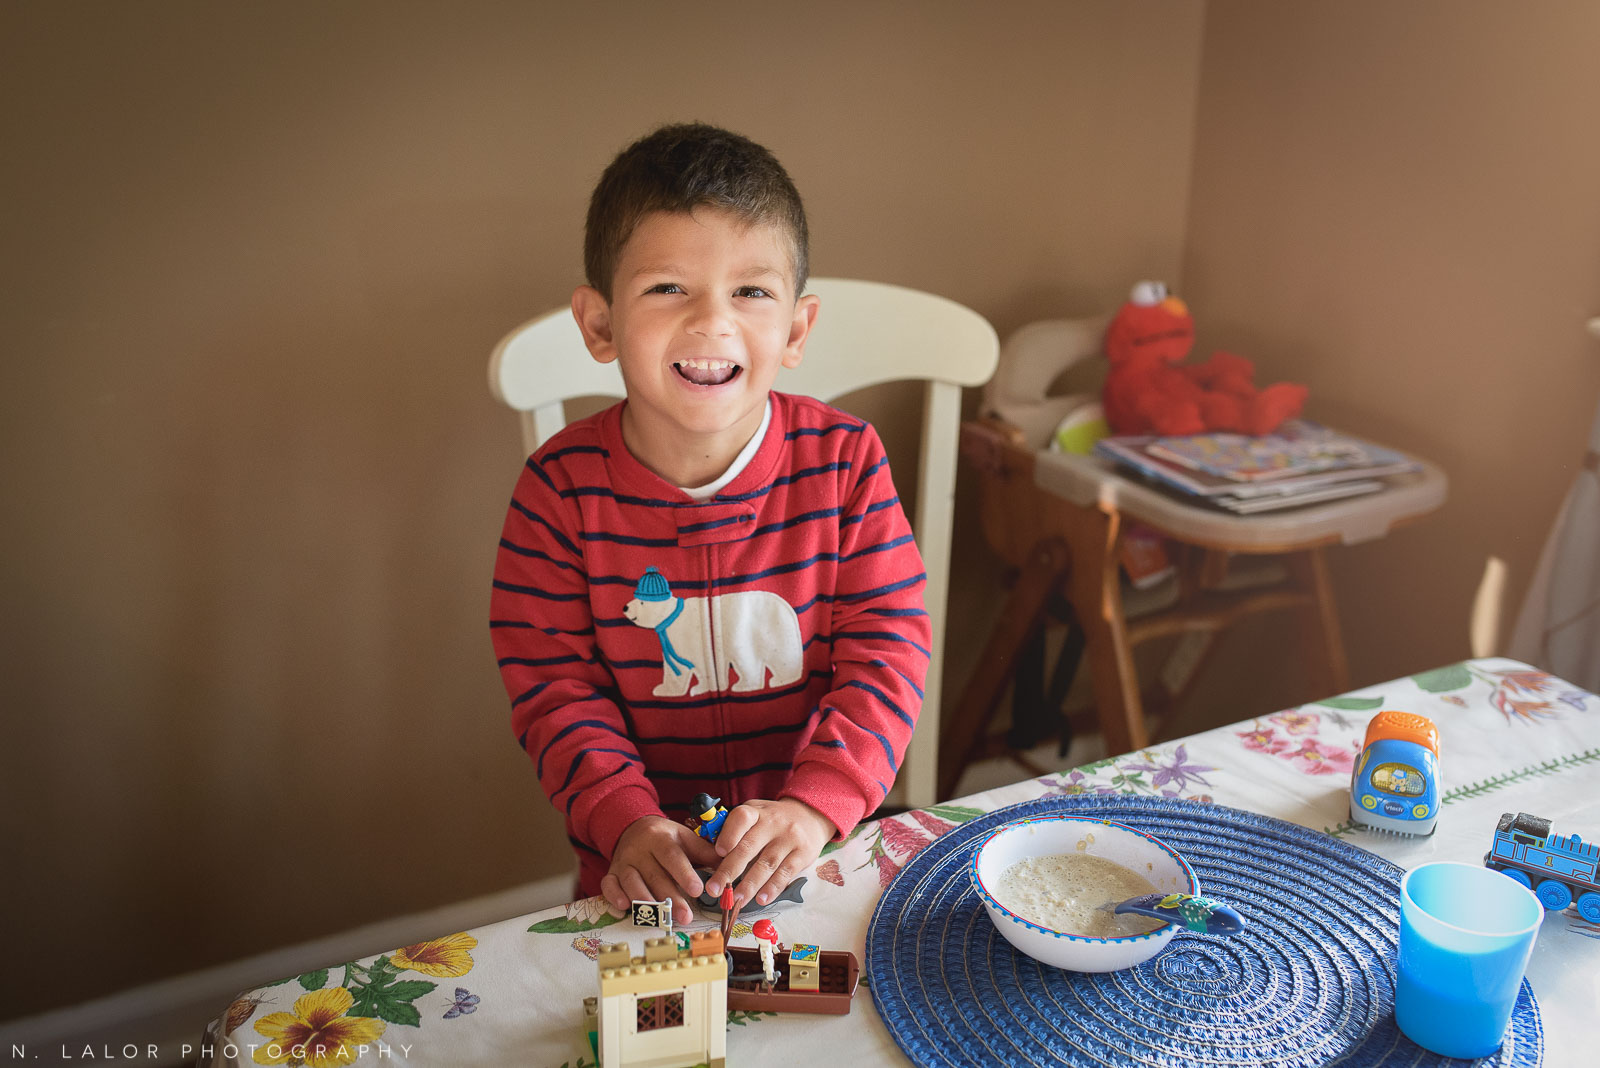 Avoiding breakfast. 4-year old boy plays with Legos at the table. Documentary photo by N. Lalor Photography.